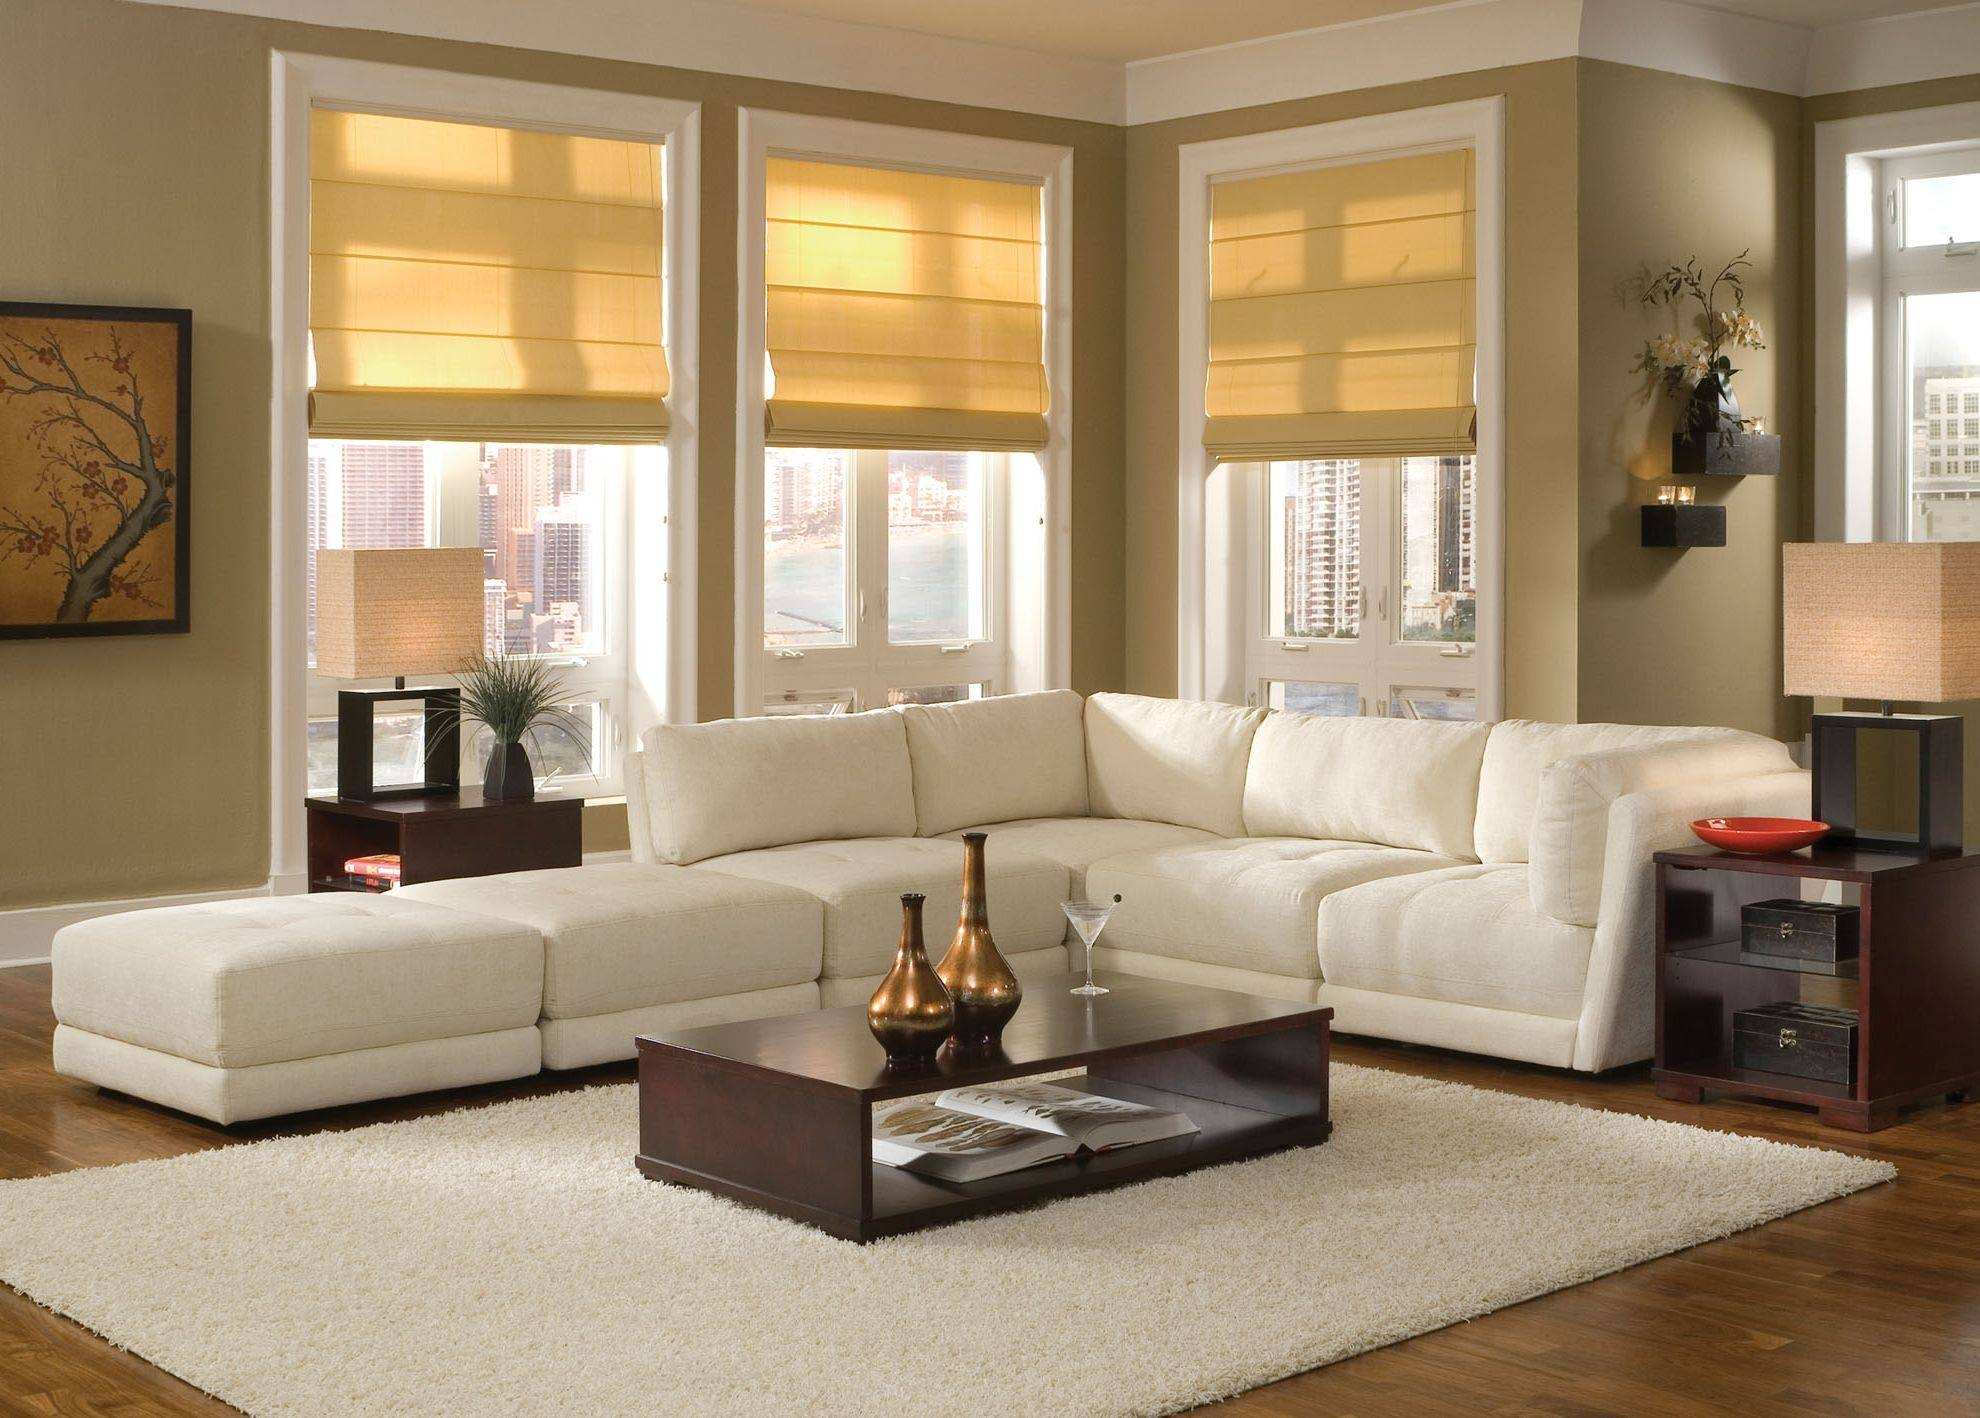 Sectional Sofa Designs intended for Decorating With A Sectional Sofa (Image 25 of 30)